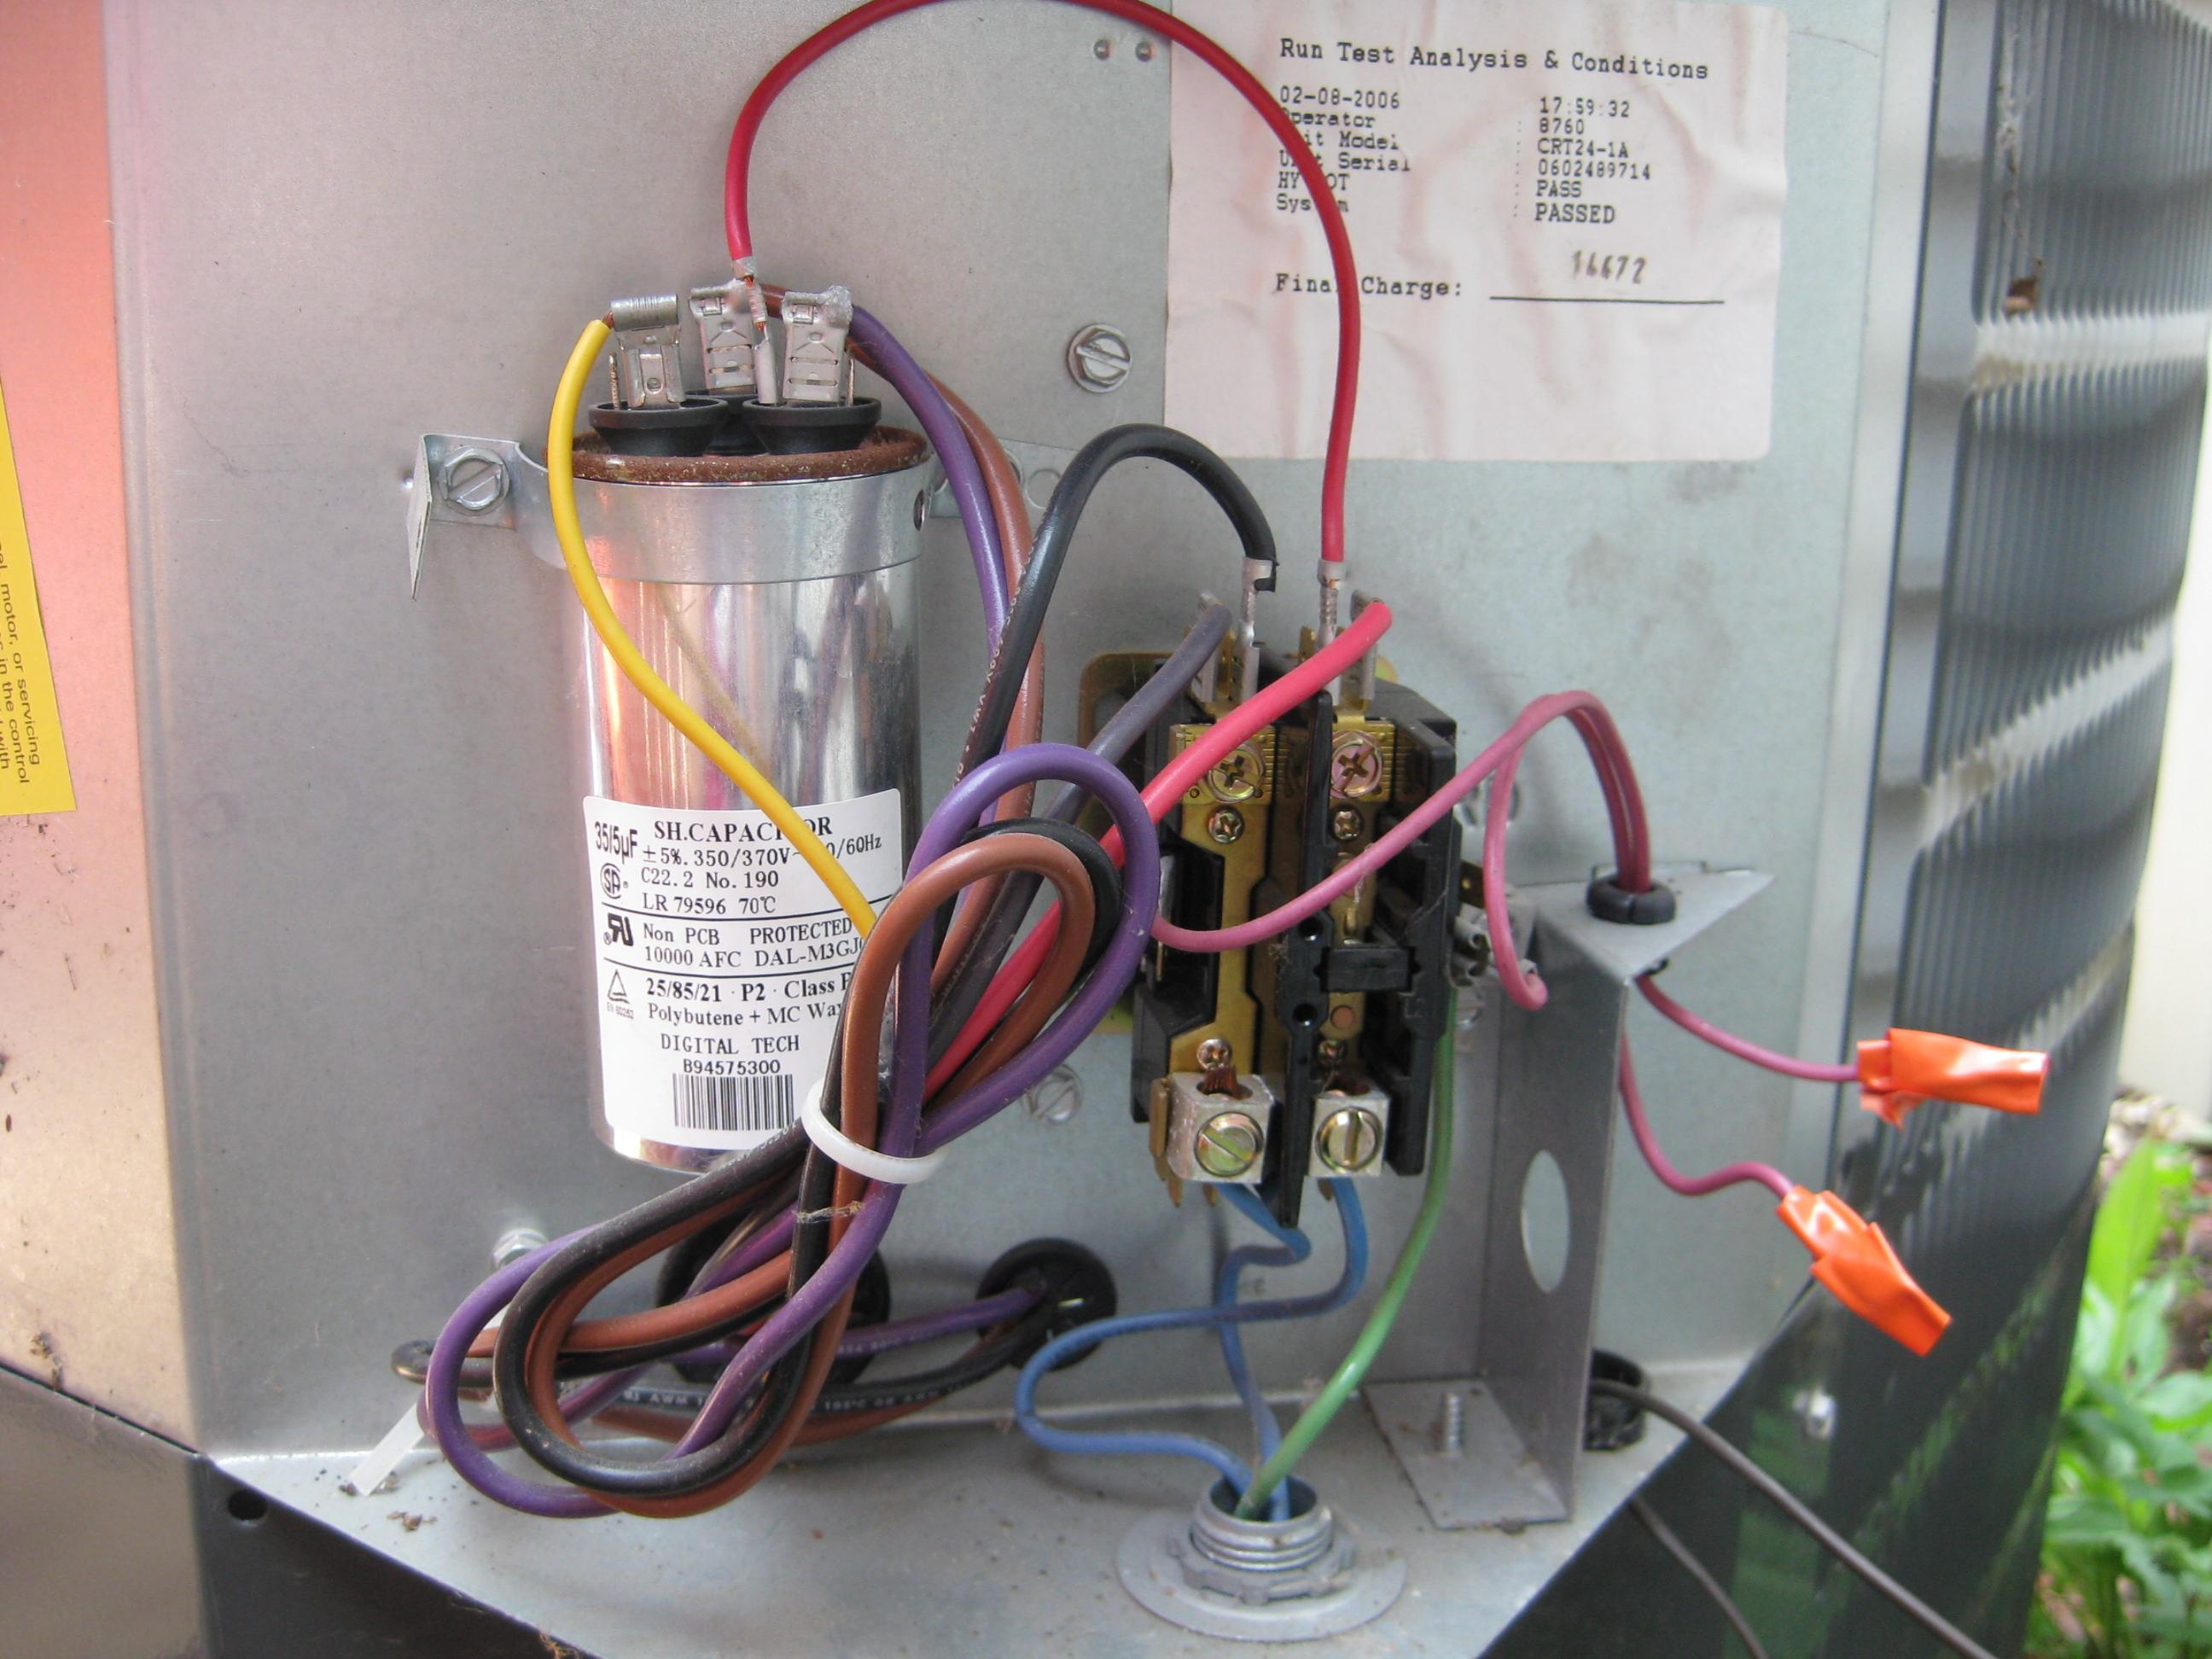 230 volt air conditioner wiring diagram free electronic circuit low voltage diagnosis basics w/ bill johnson (podcast) - hvac school